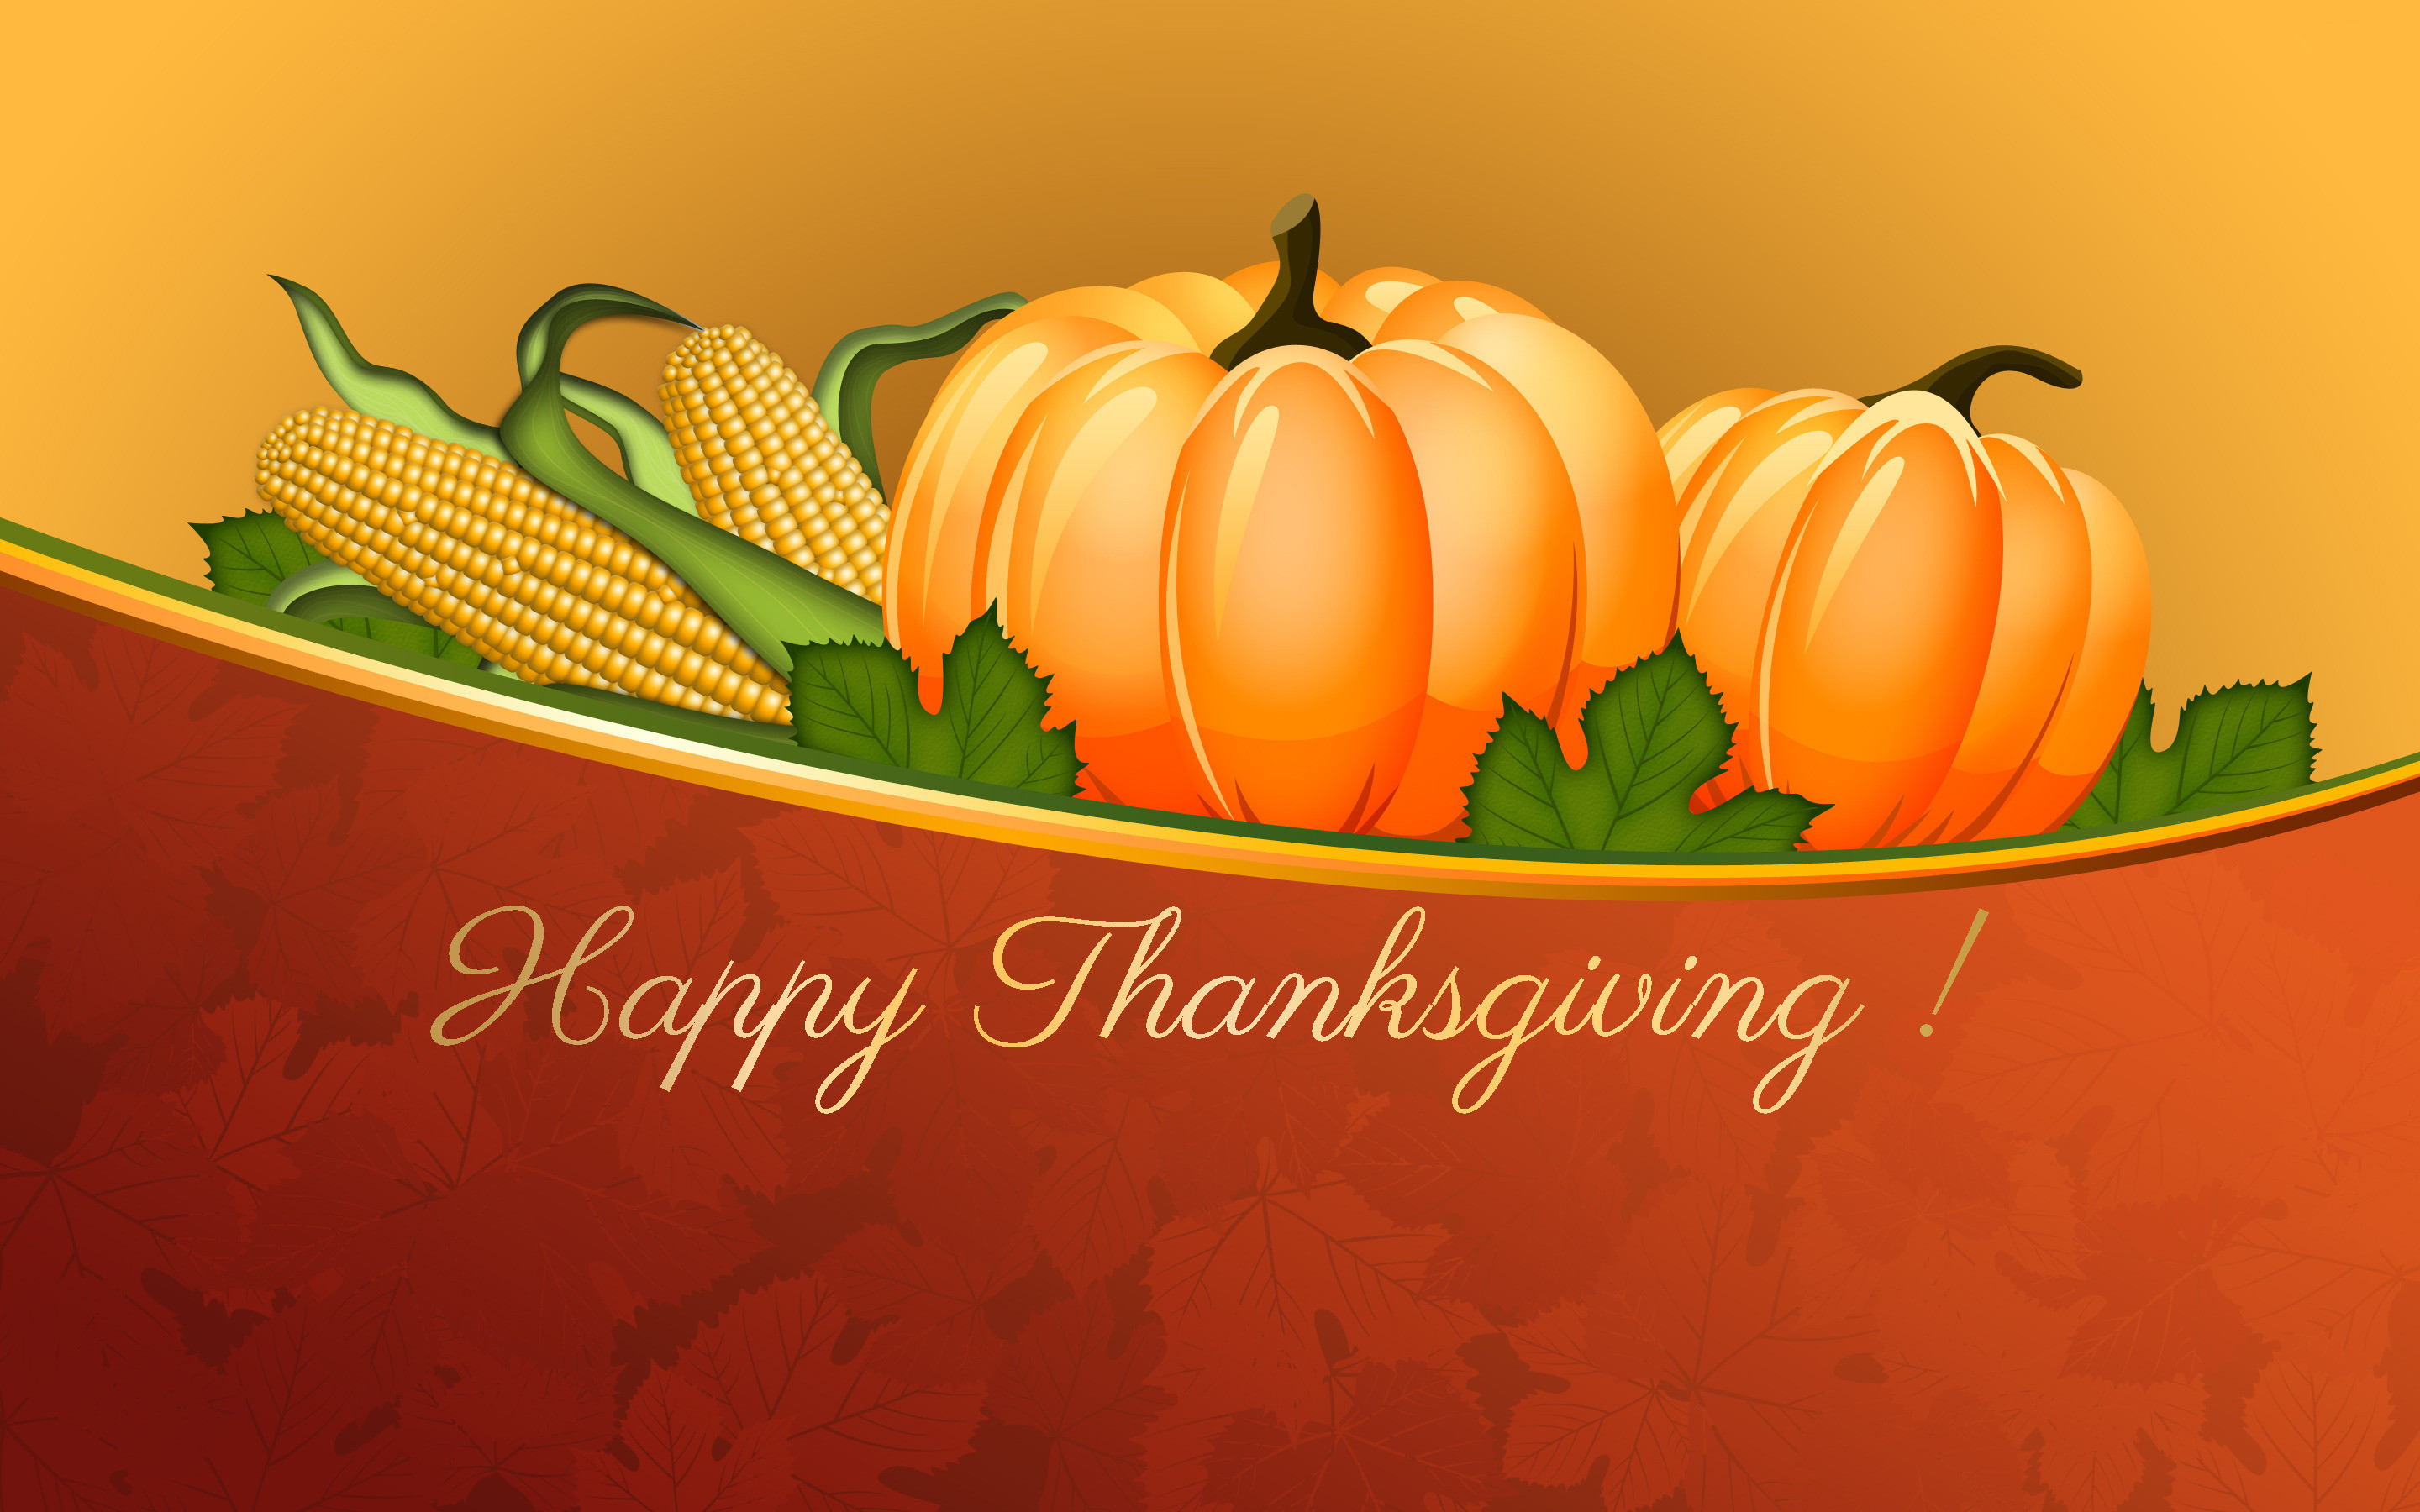 Desktop Wallpaper Thanksgiving Holiday 71 images 2880x1800